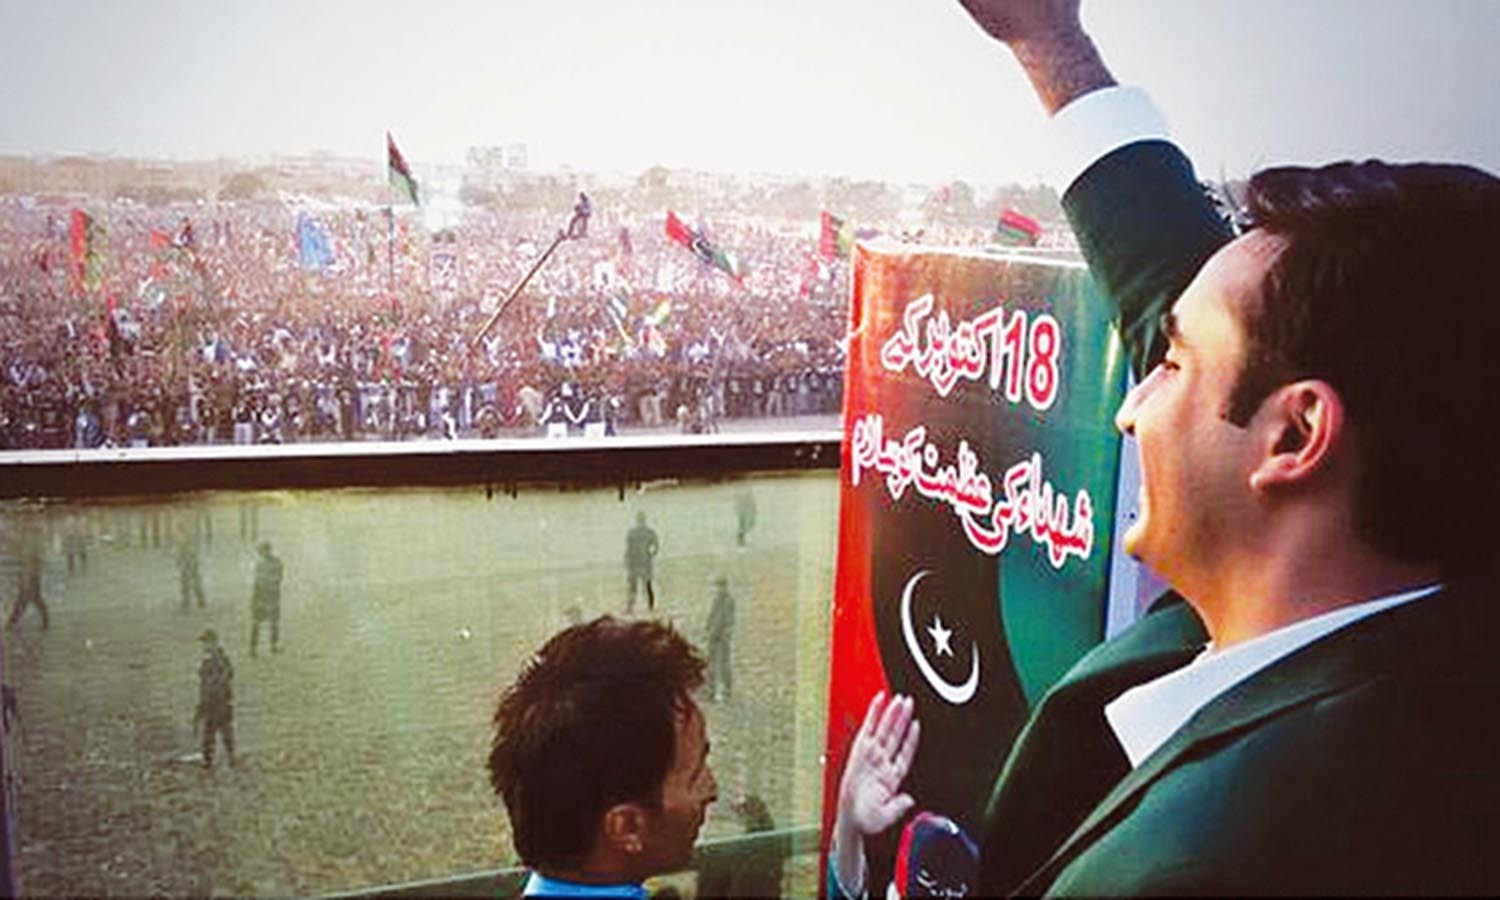 Chairperson of the left-liberal PPP, Bilawal Bhutto, at a party rally in the Sindh city of Larkana. The PPP has been Sindh's largest political party since the 1970s.